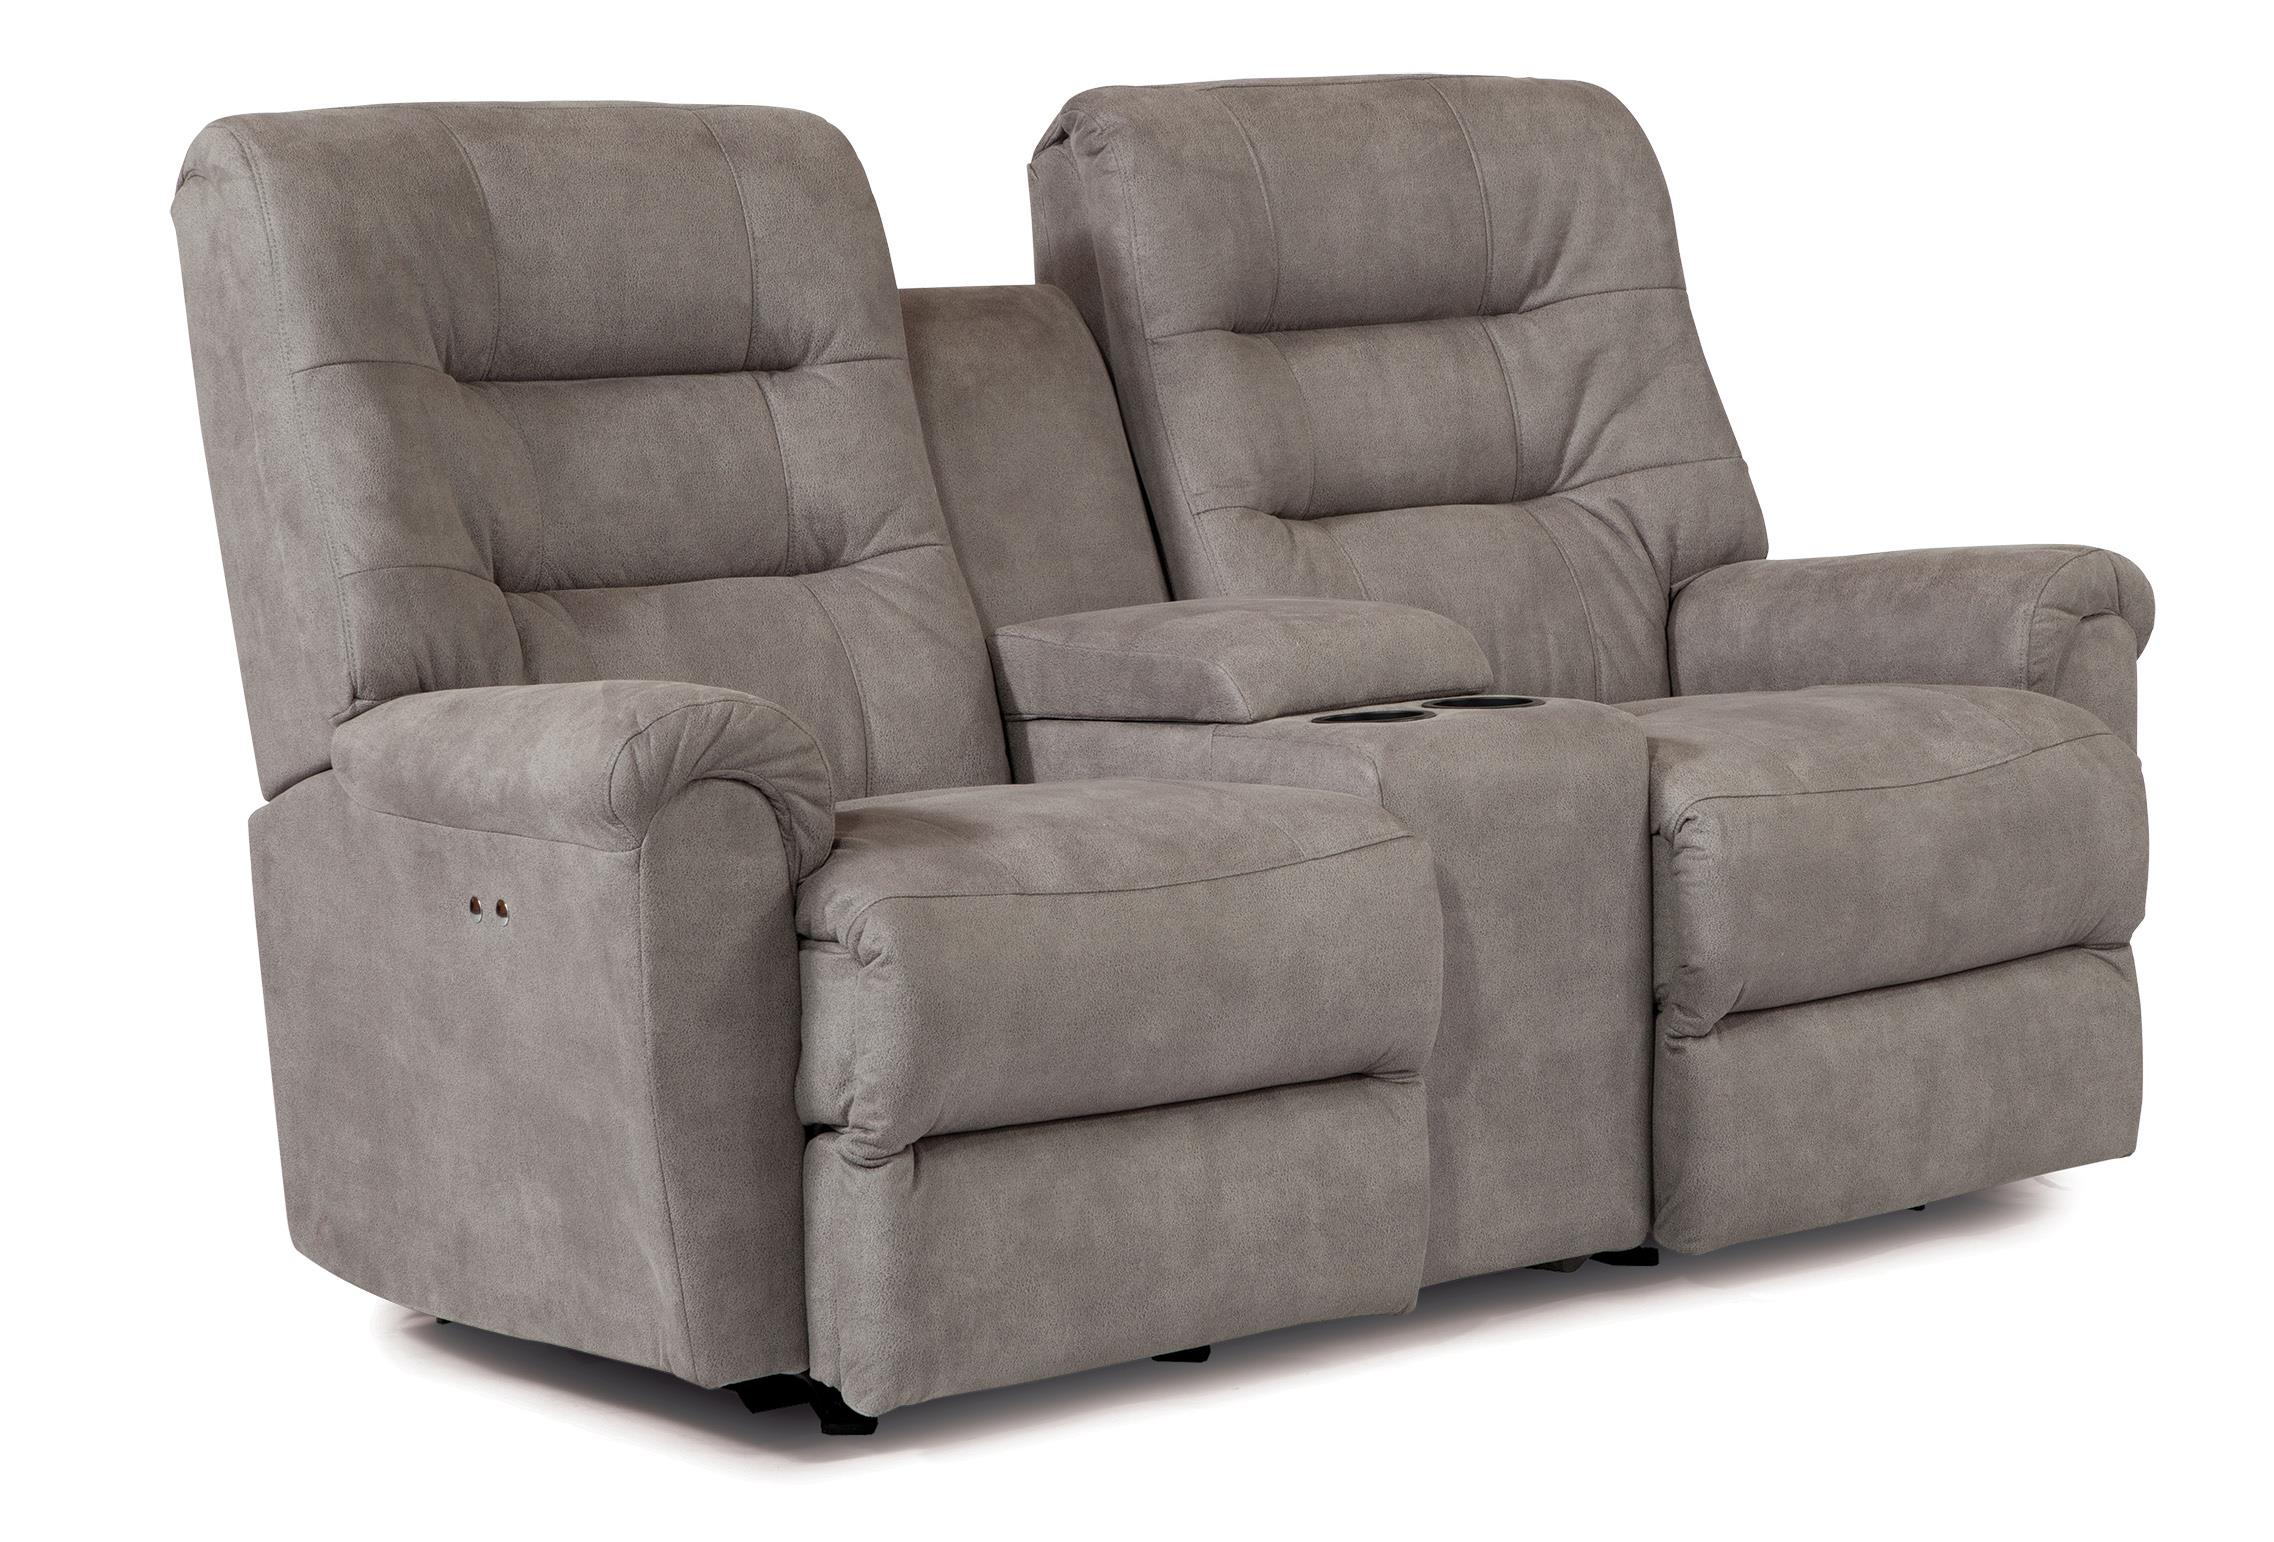 Best Home Furnishings Langston L820rq7 Casual Power Rocking Reclining Loveseat With Cupholder